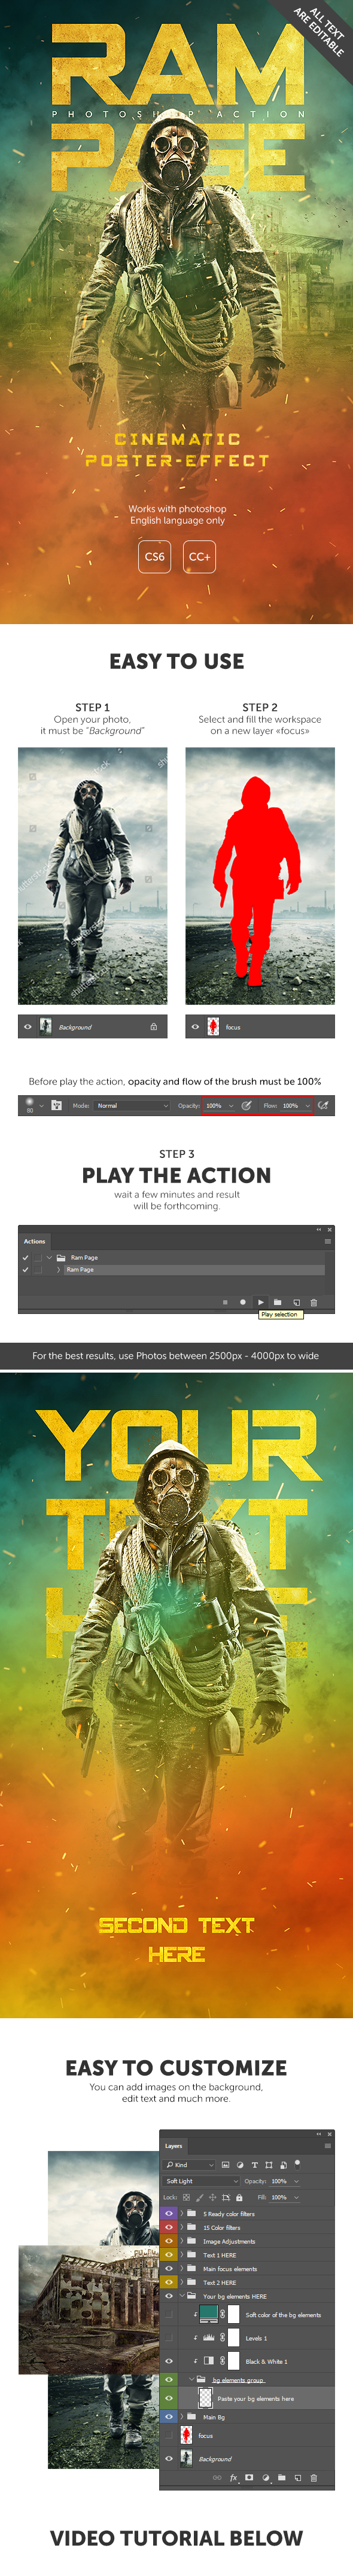 Ram Page - Photoshop Action - Photo Effects Actions